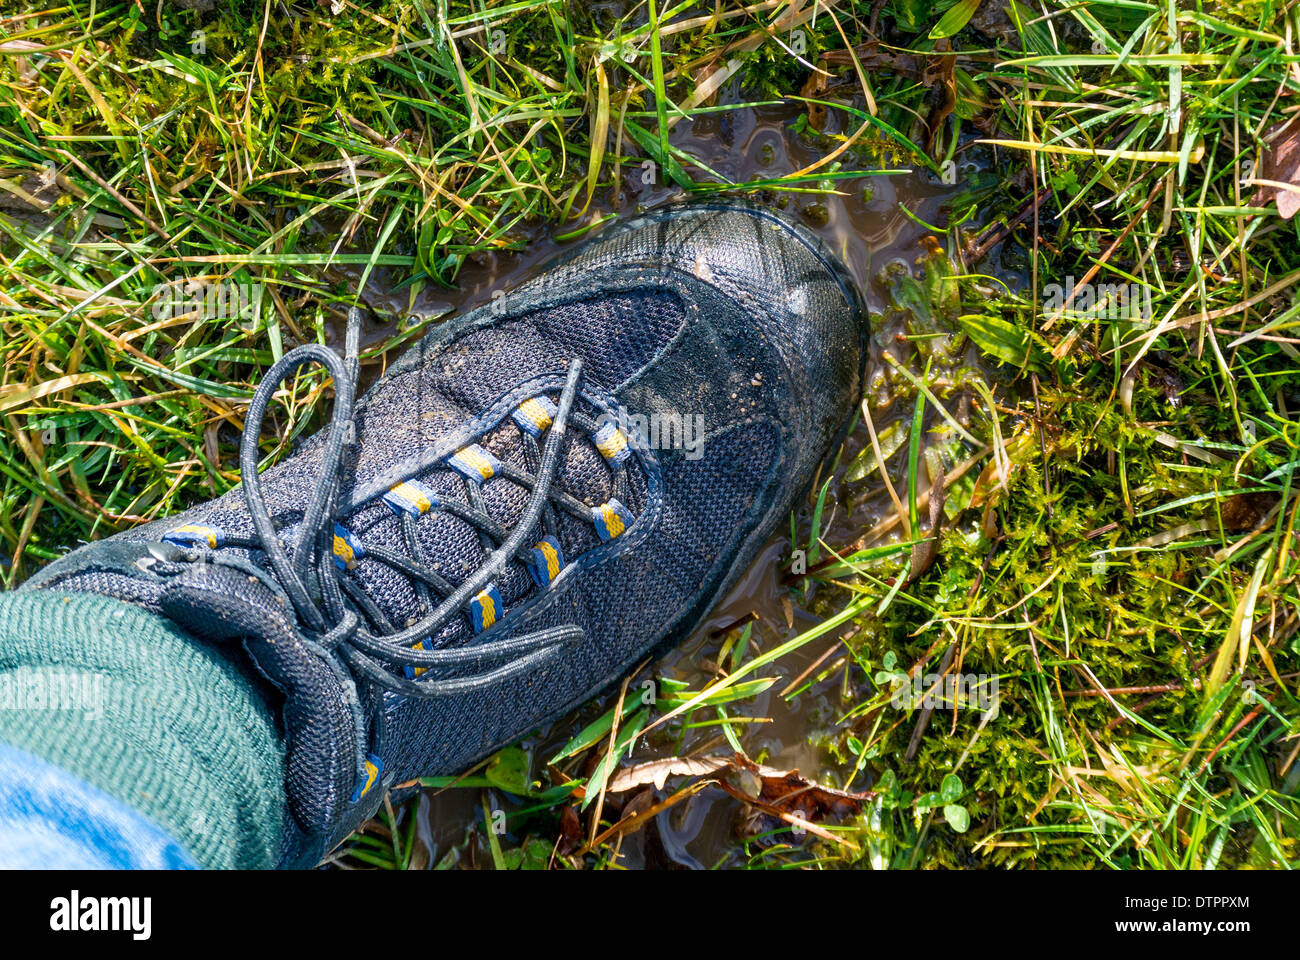 Boot on waterlogged ground with ground water collecting on grass. Stock Photo